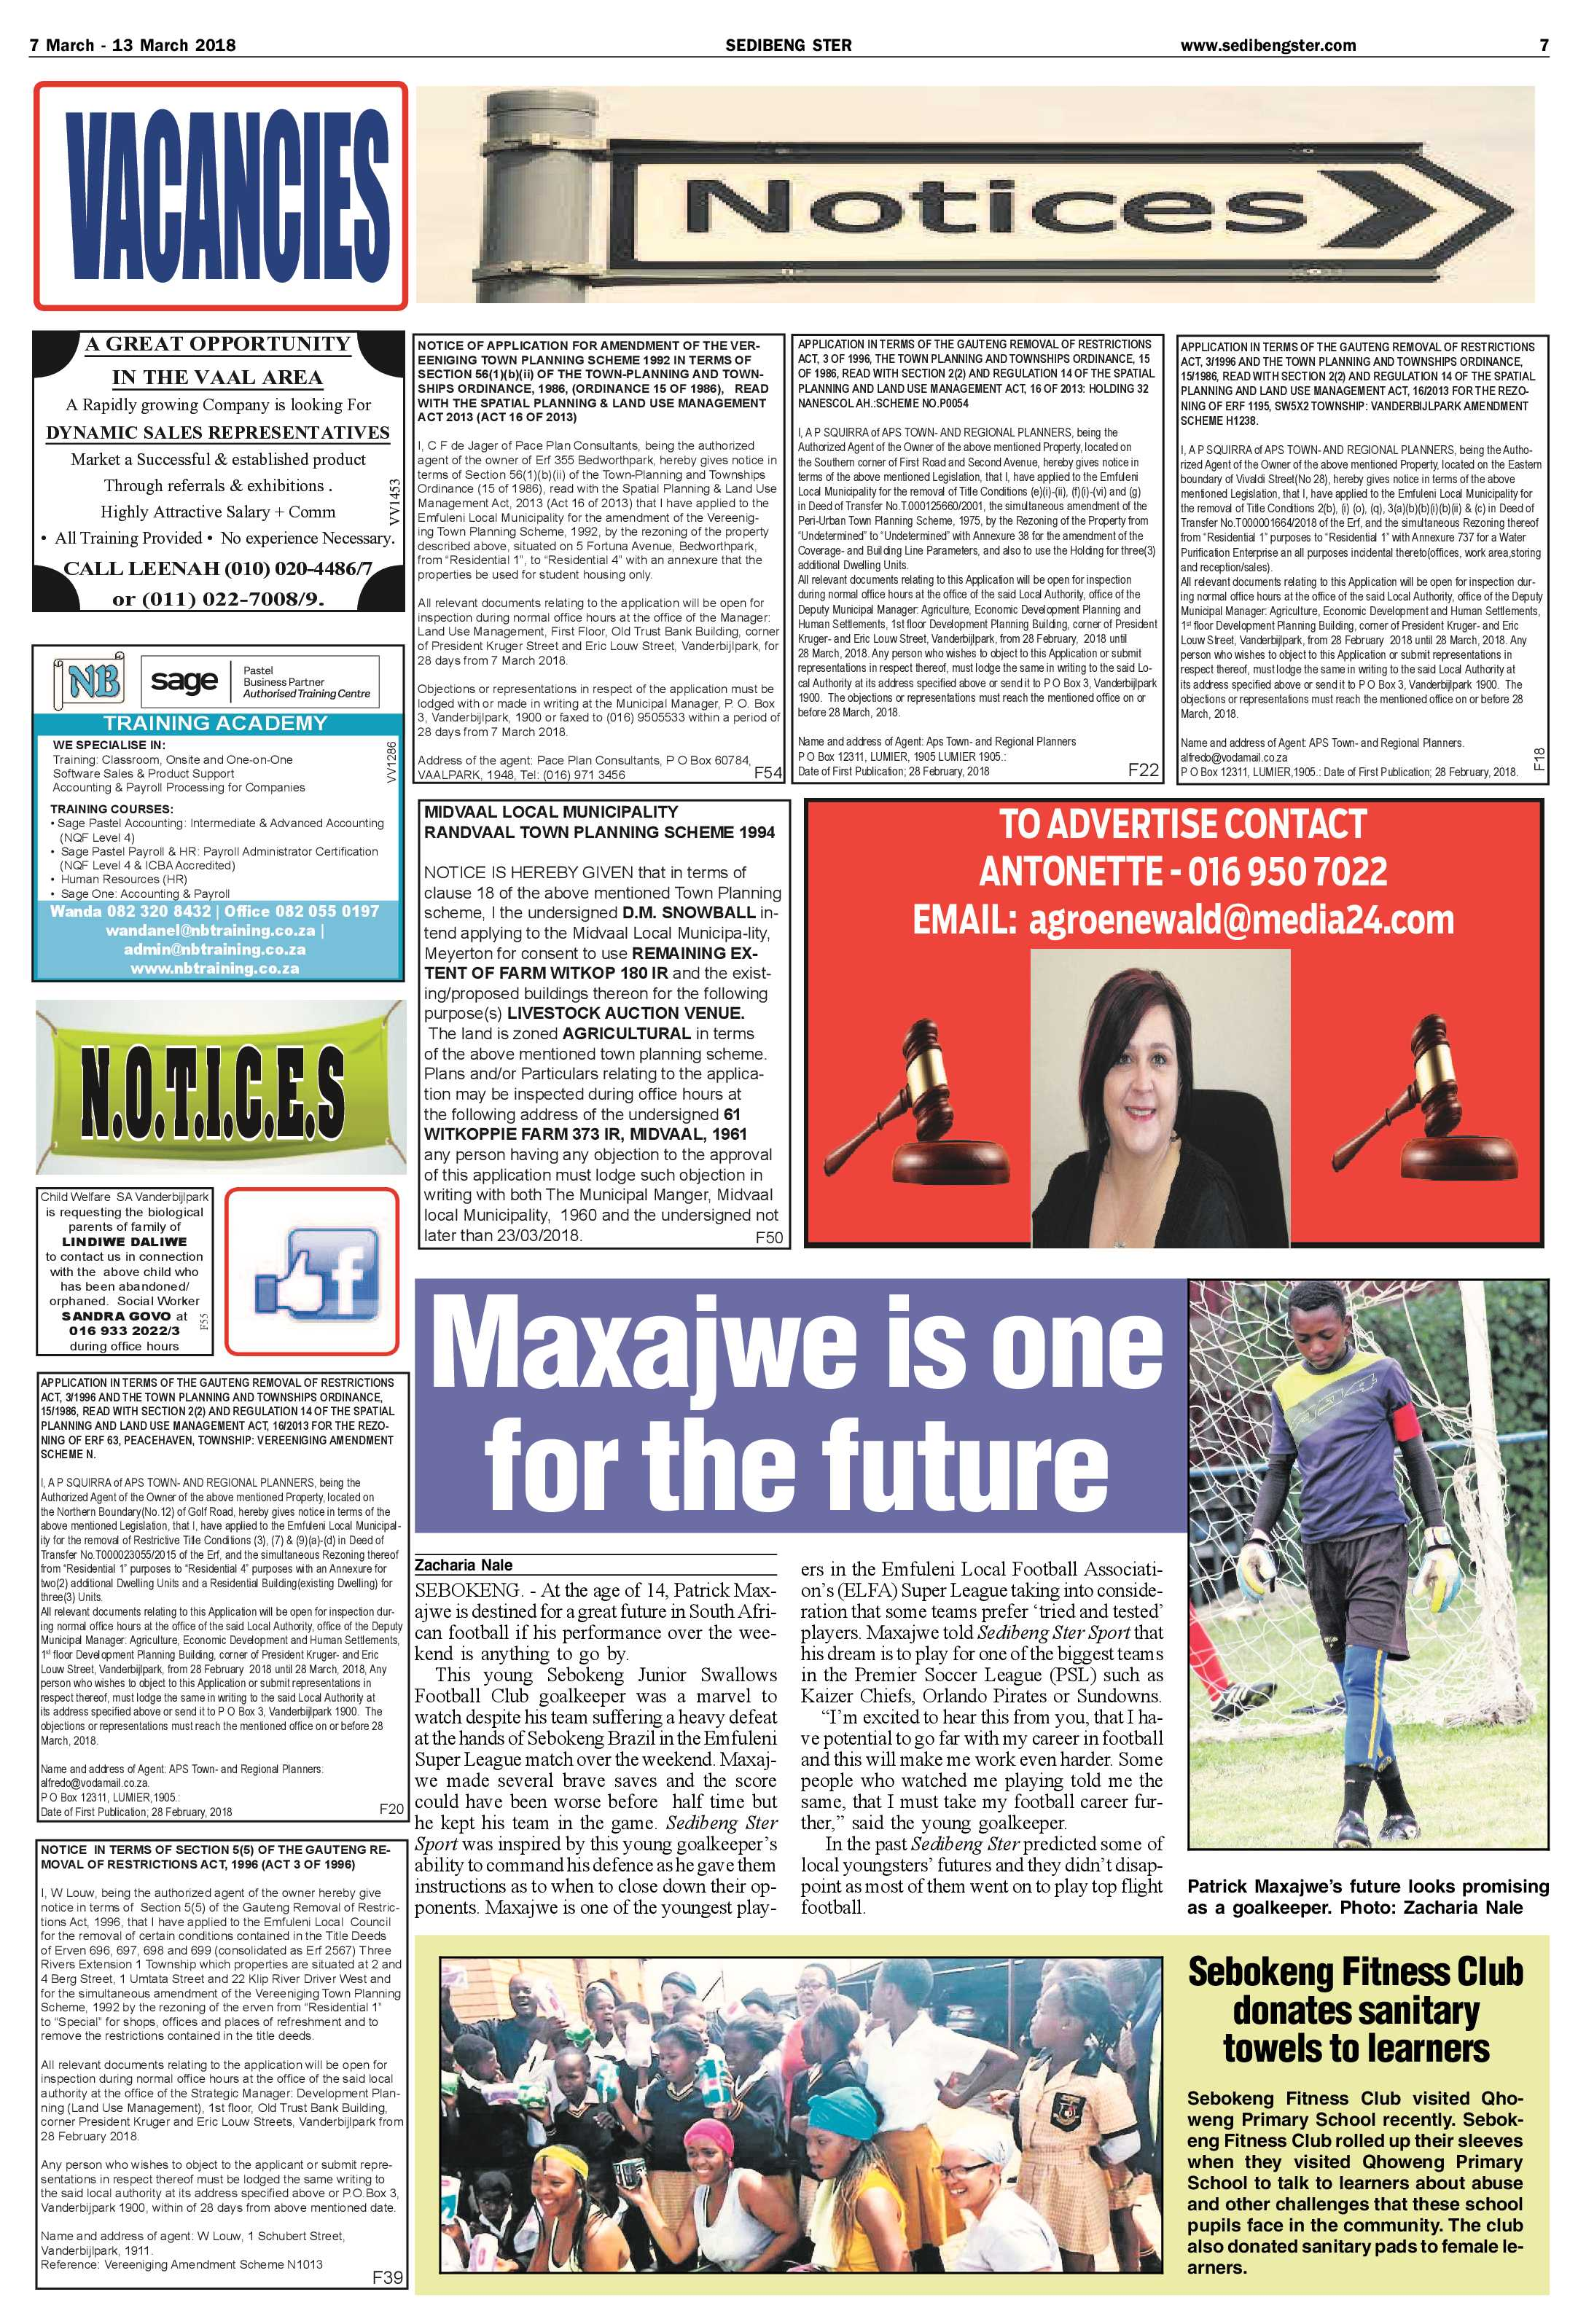 sedibeng-ster-7-13-march-2018-epapers-page-7